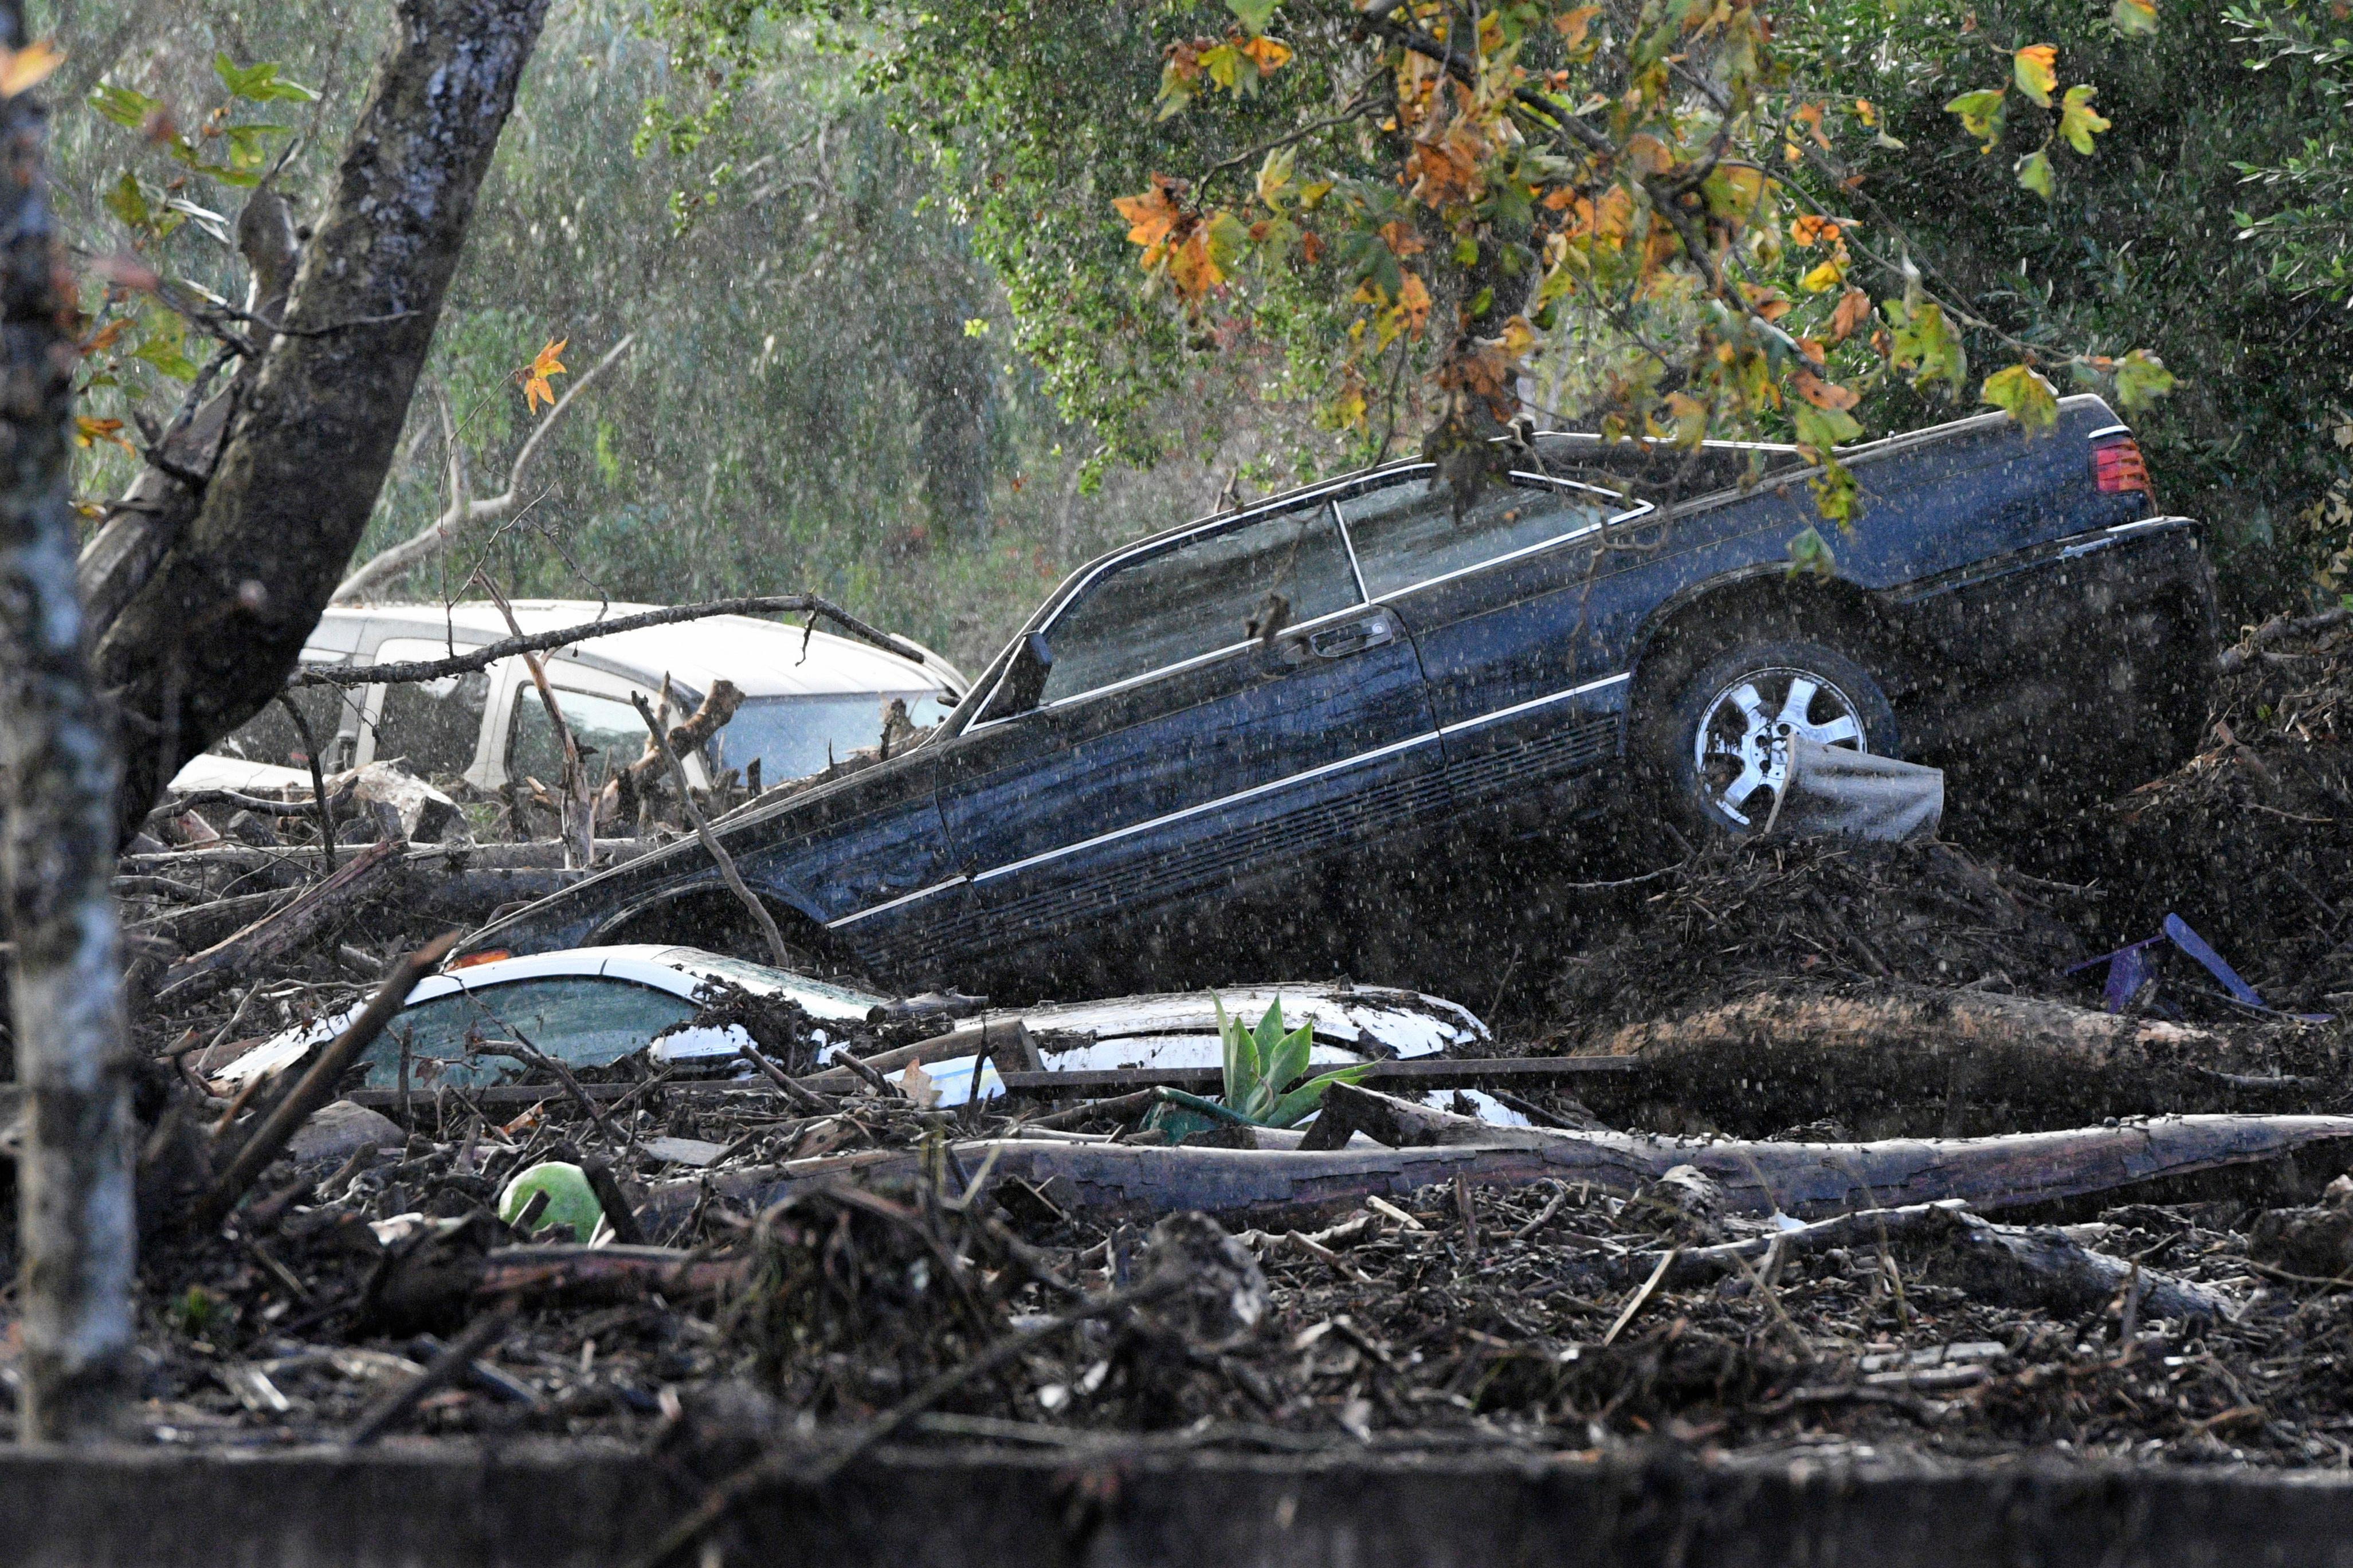 Cars that were washed away are piled up on the banks of Romero Creek in Montecito, Calif., Tuesday, Jan. 9, 2018. Dozens of homes were swept away or heavily damaged Tuesday as downpours sent mud and boulders roaring down hills stripped of vegetation by a gigantic wildfire that raged in Southern California last month. (AP Photo/Michael Owen Baker)